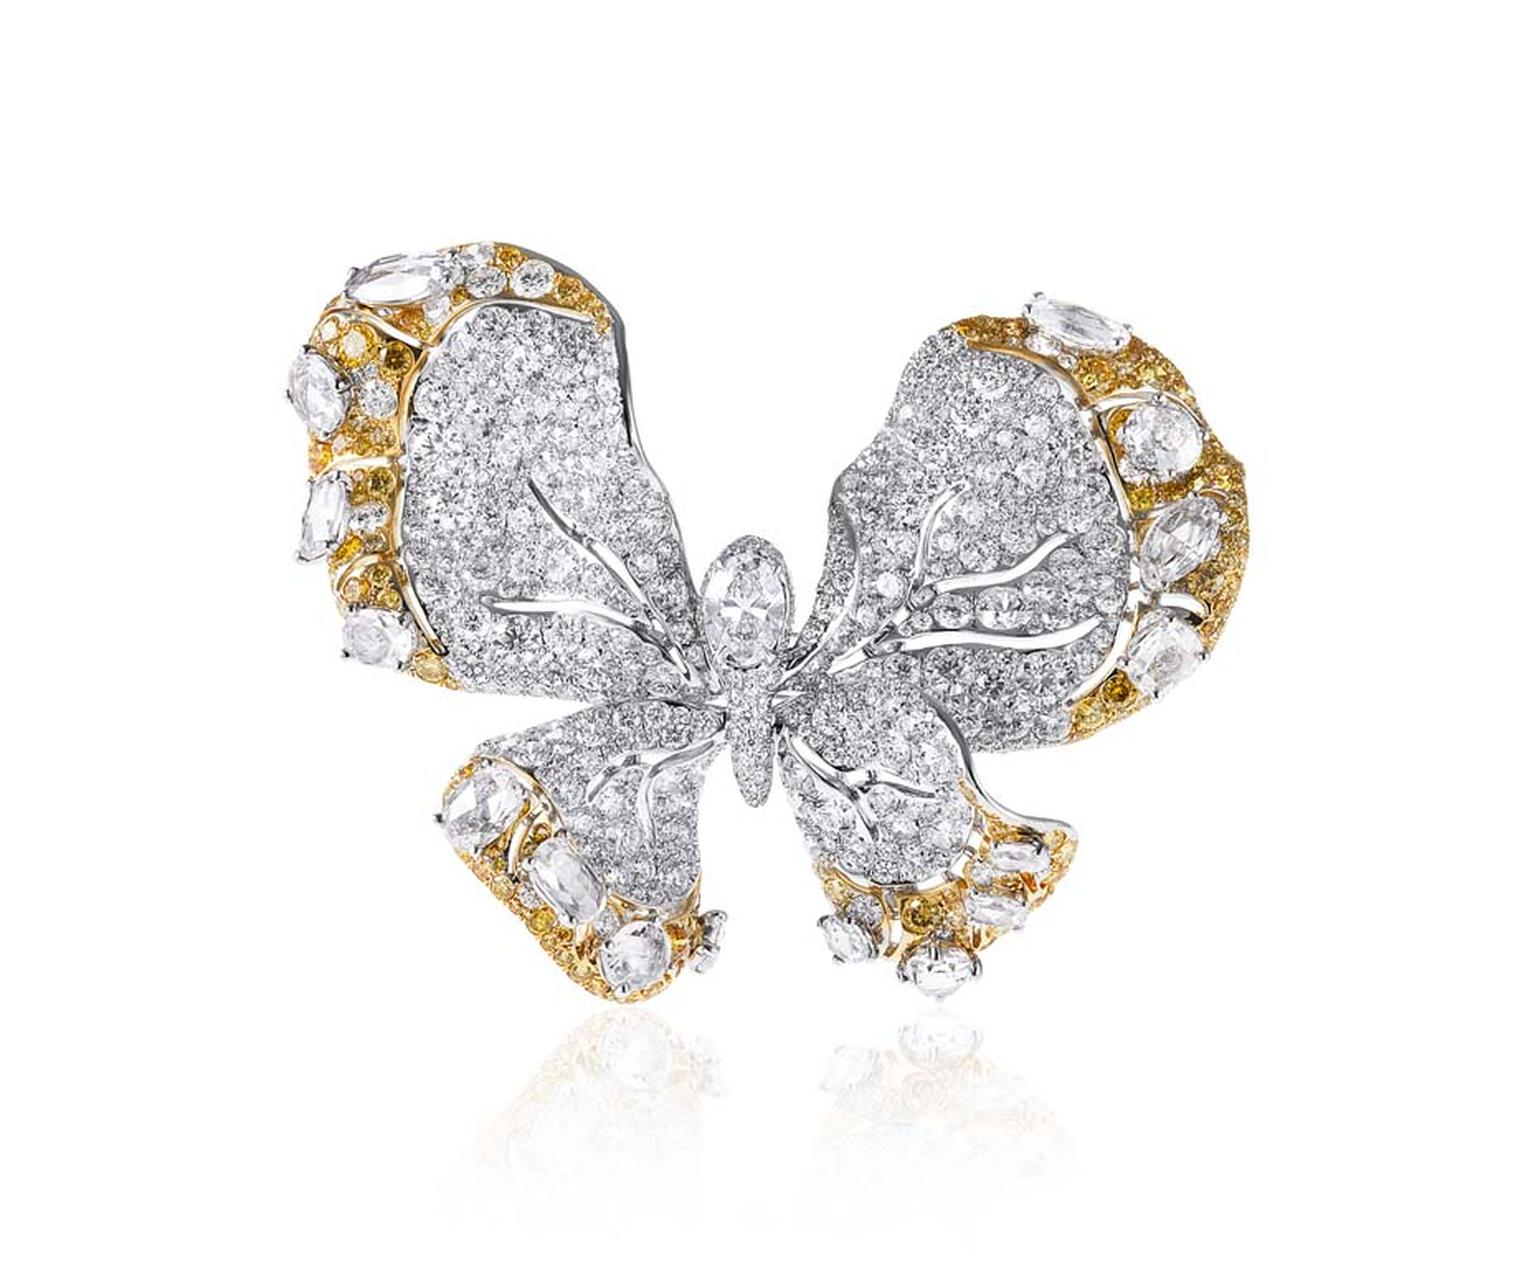 Cindy Chao 10th anniversary White Label collection Butterfly brooch in white gold with yellow and white diamonds.